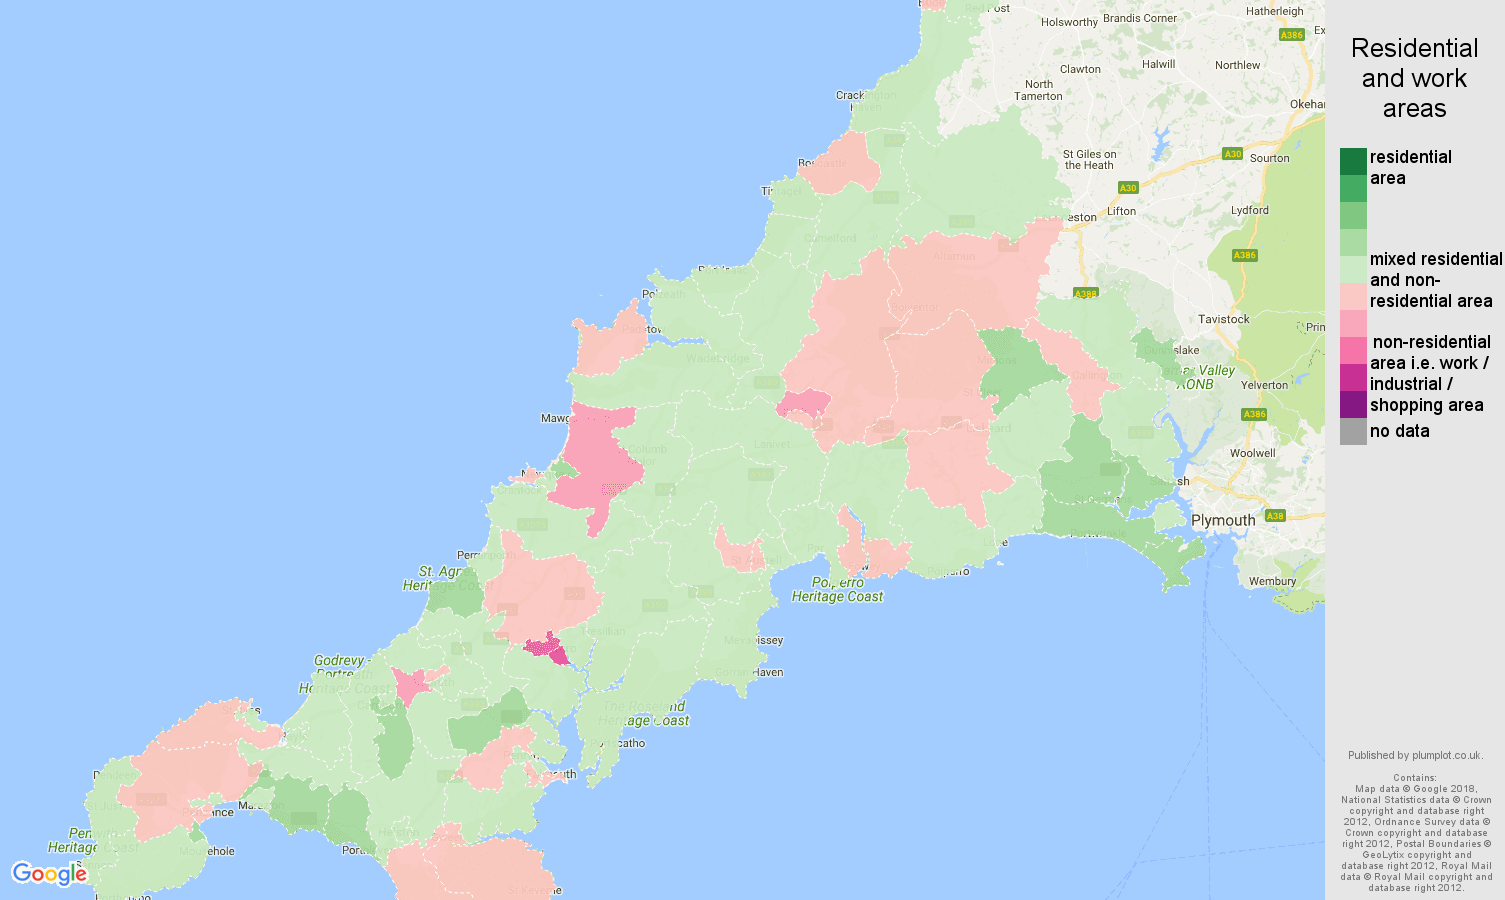 Cornwall residential areas map